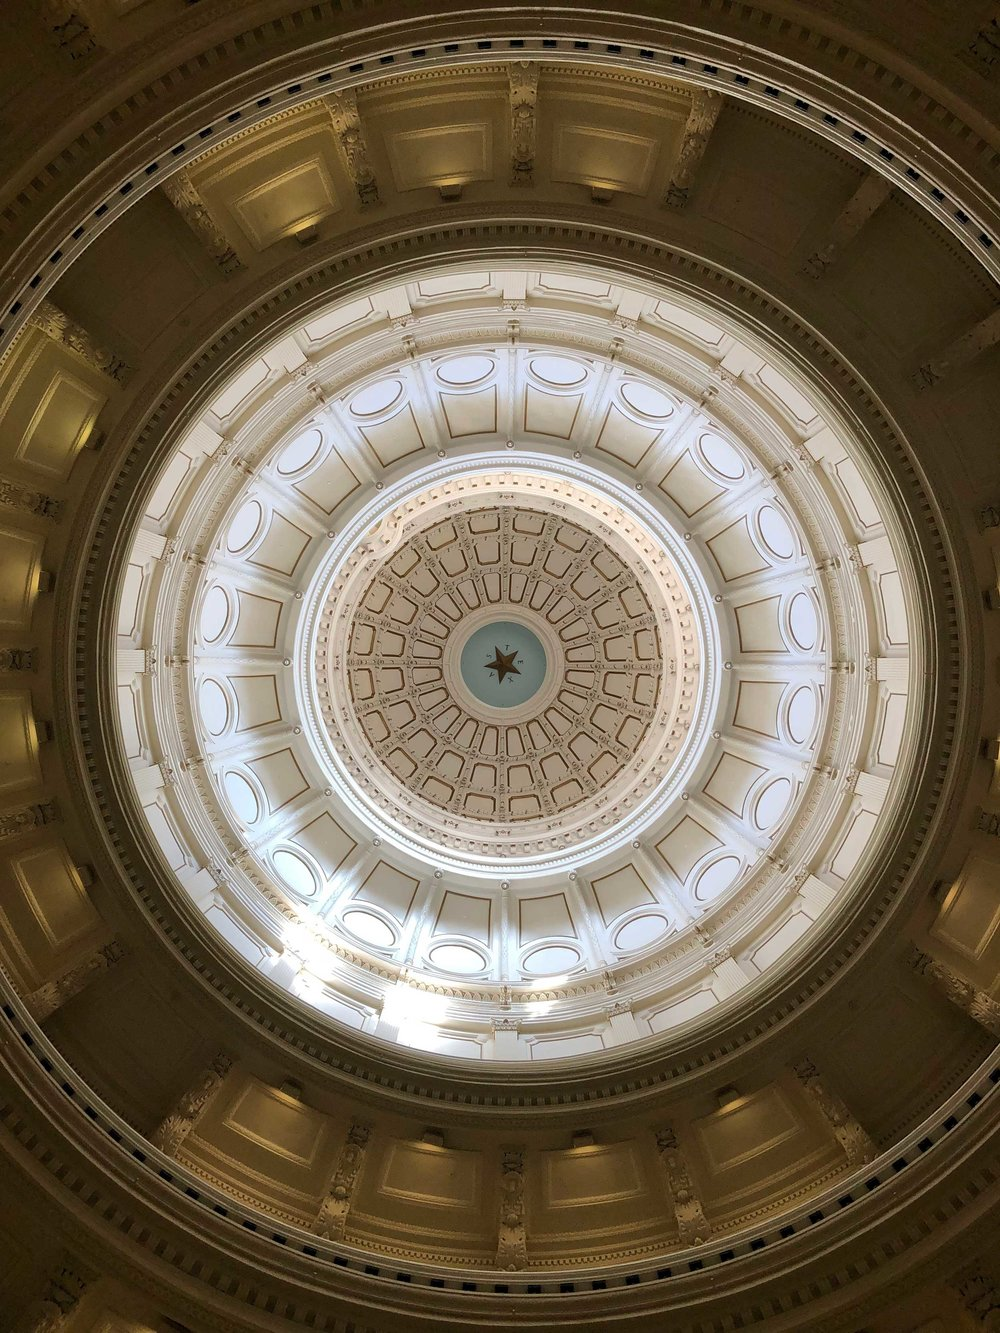 The dome of the Texas State Capitol in Austin, Texas.